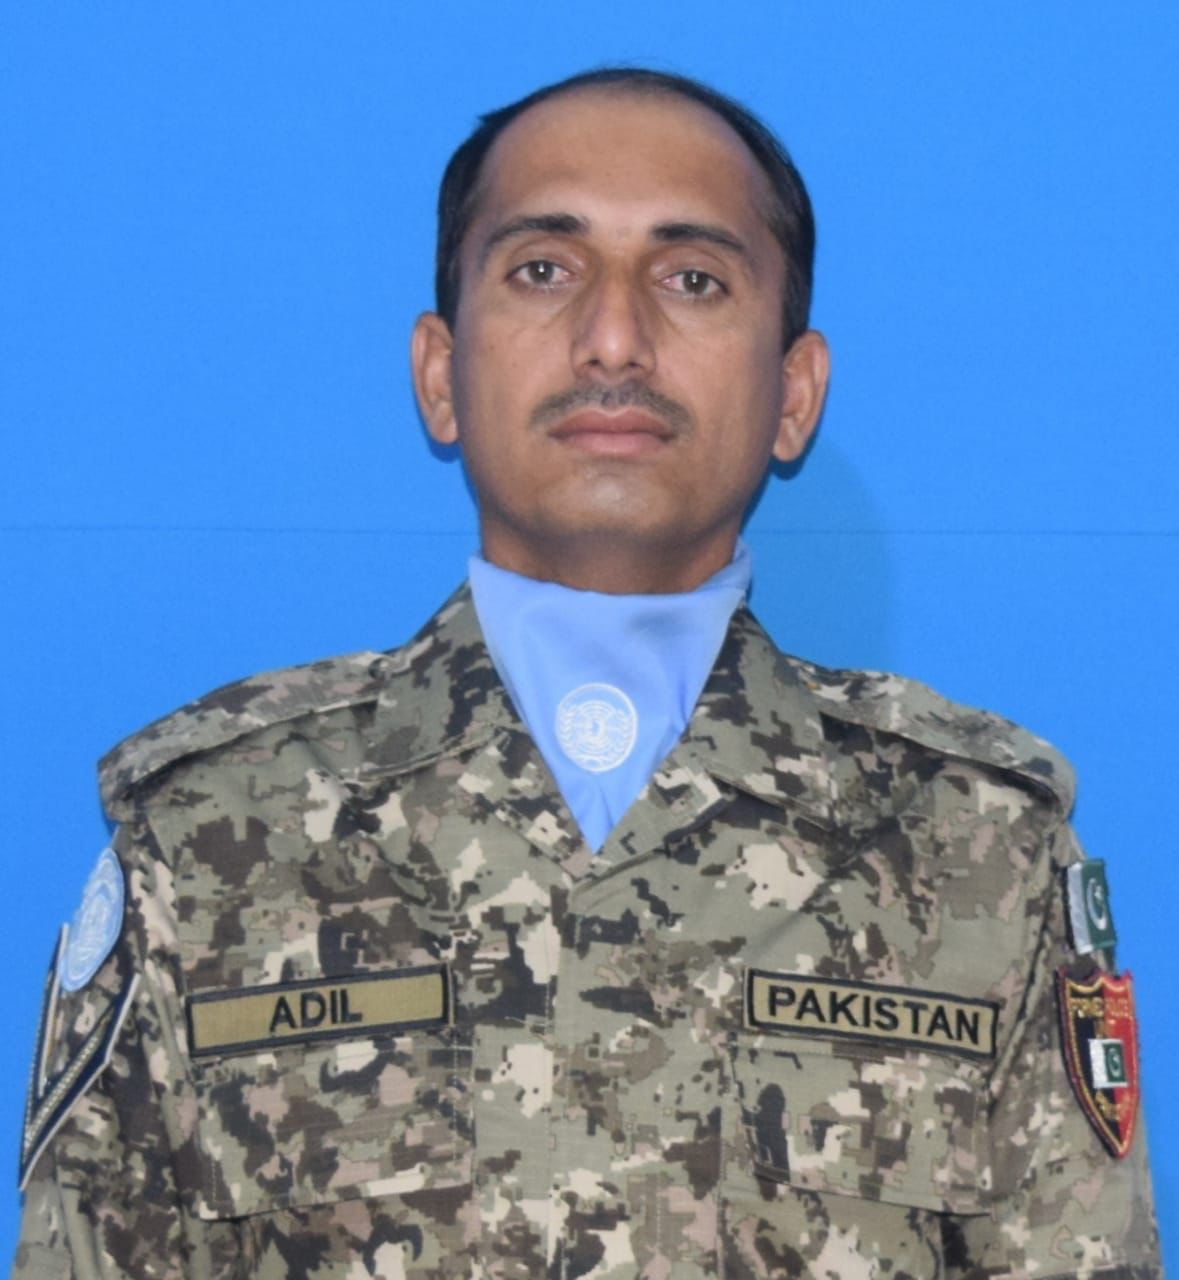 Lance Naik Adil Jan serving in UN mission Darfur embraced shahadat while on duty. Lance Naik Adil Jan, FC Balochistan, age 38 years resident of Lakki Marwat was part of UN mission Darfur responsible for protection of civilians and facilitating humanitarian assistance. So far 161 Pakistani peace keepers have laid lives as part of global peace missions for international peace and stability.